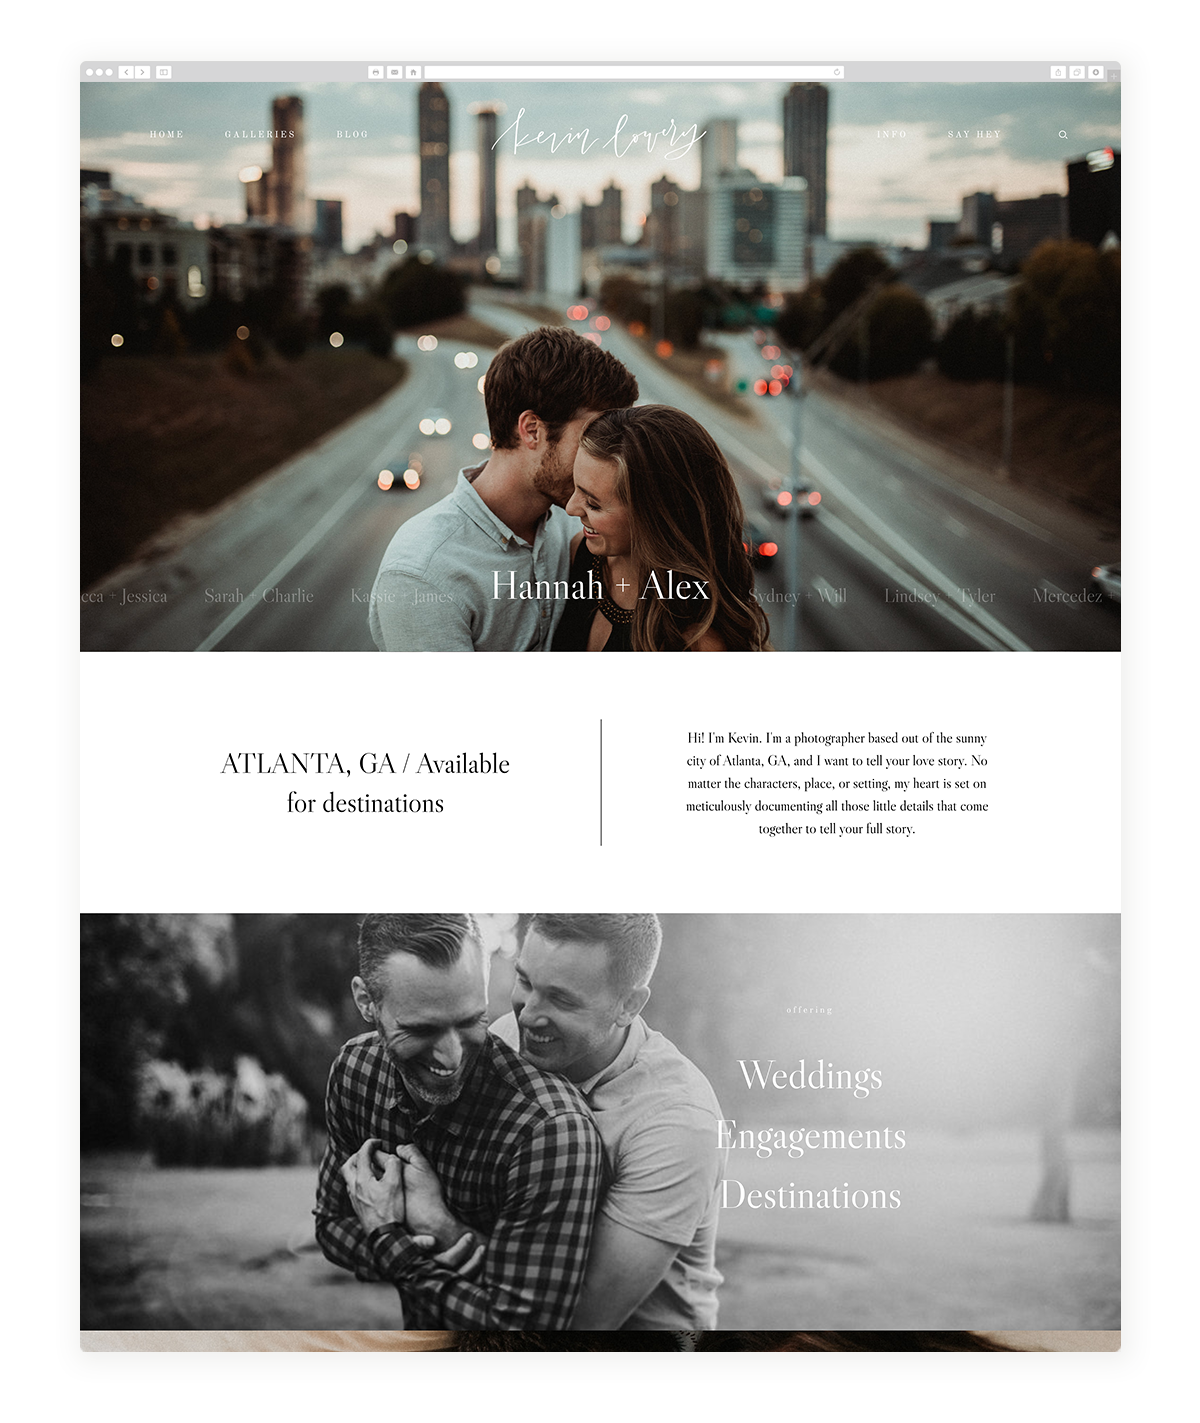 kyoto-website design, theme, wedding photography, site design, flothemes-kevin-lowery